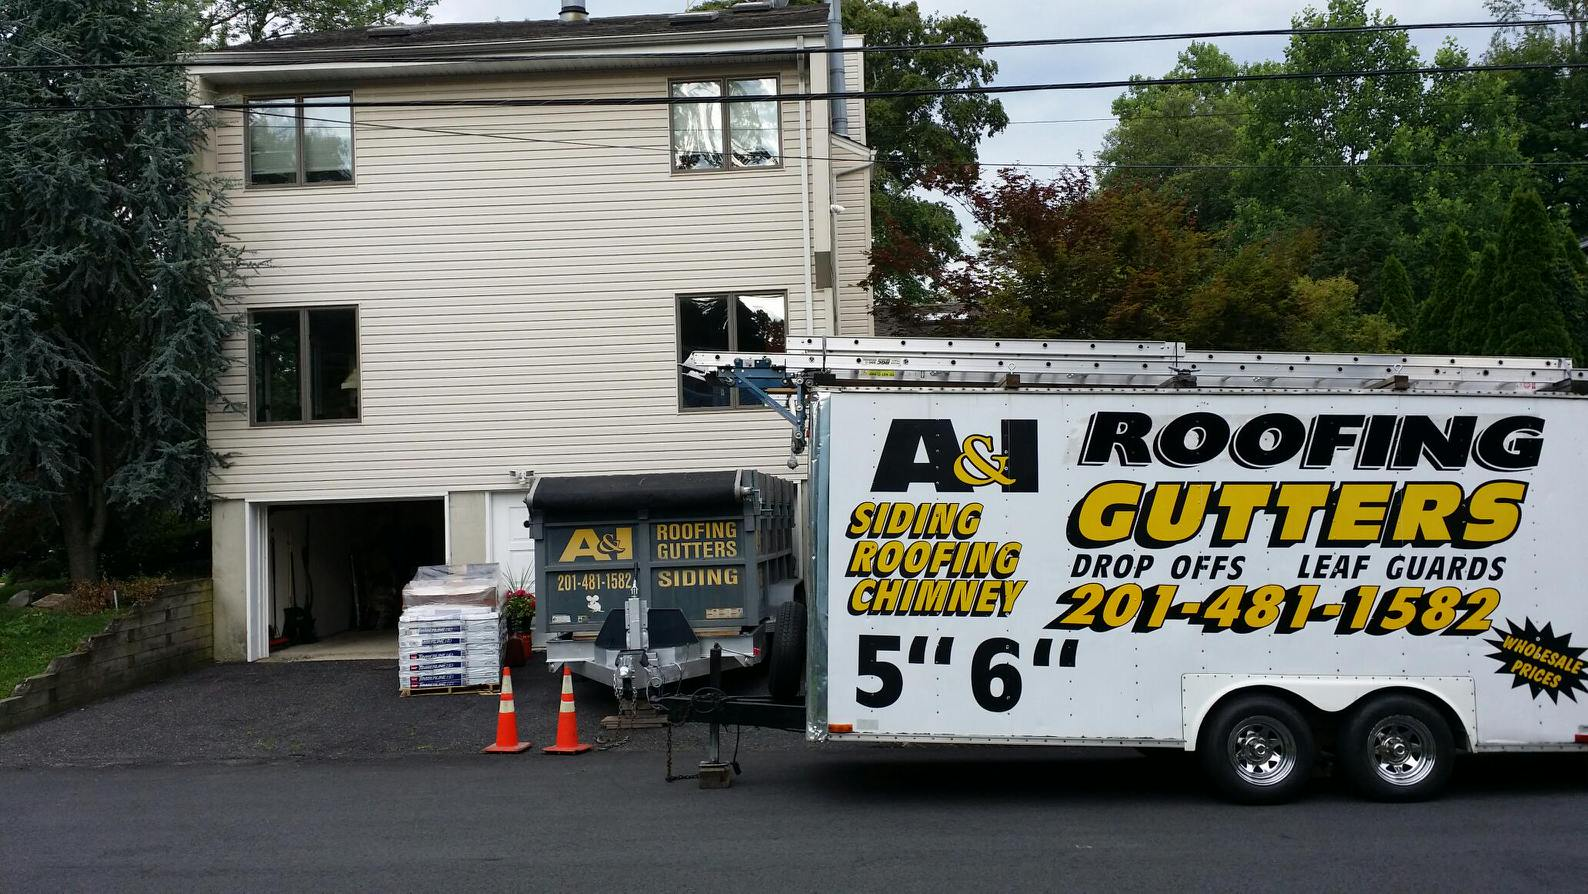 A&I Roofing and Gutters image 5